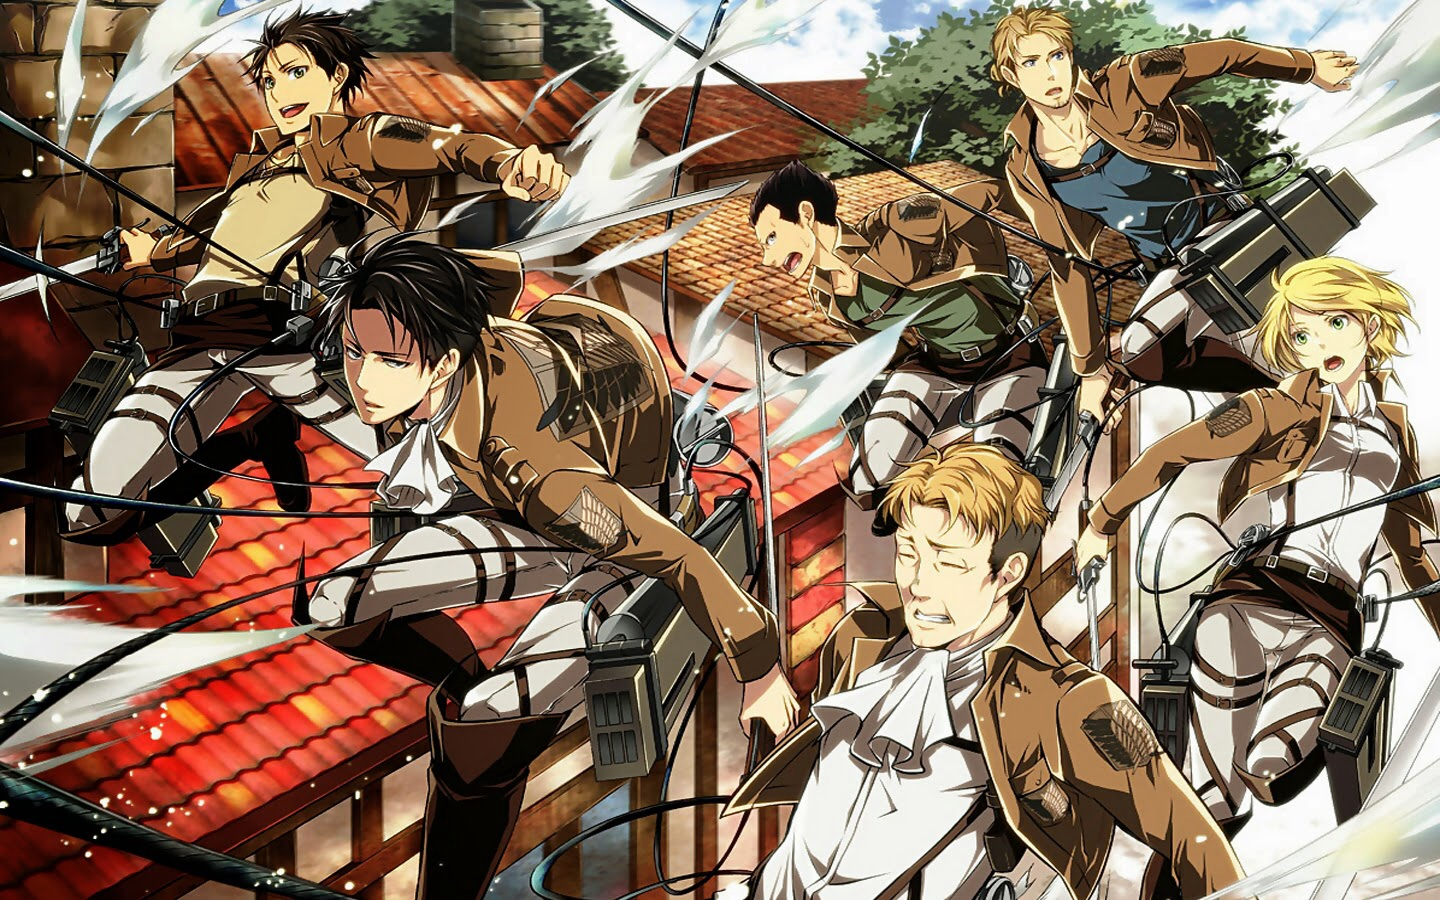 Levi Squad Shingeki No Kyojin Attack On Titan Wallpaper Levi